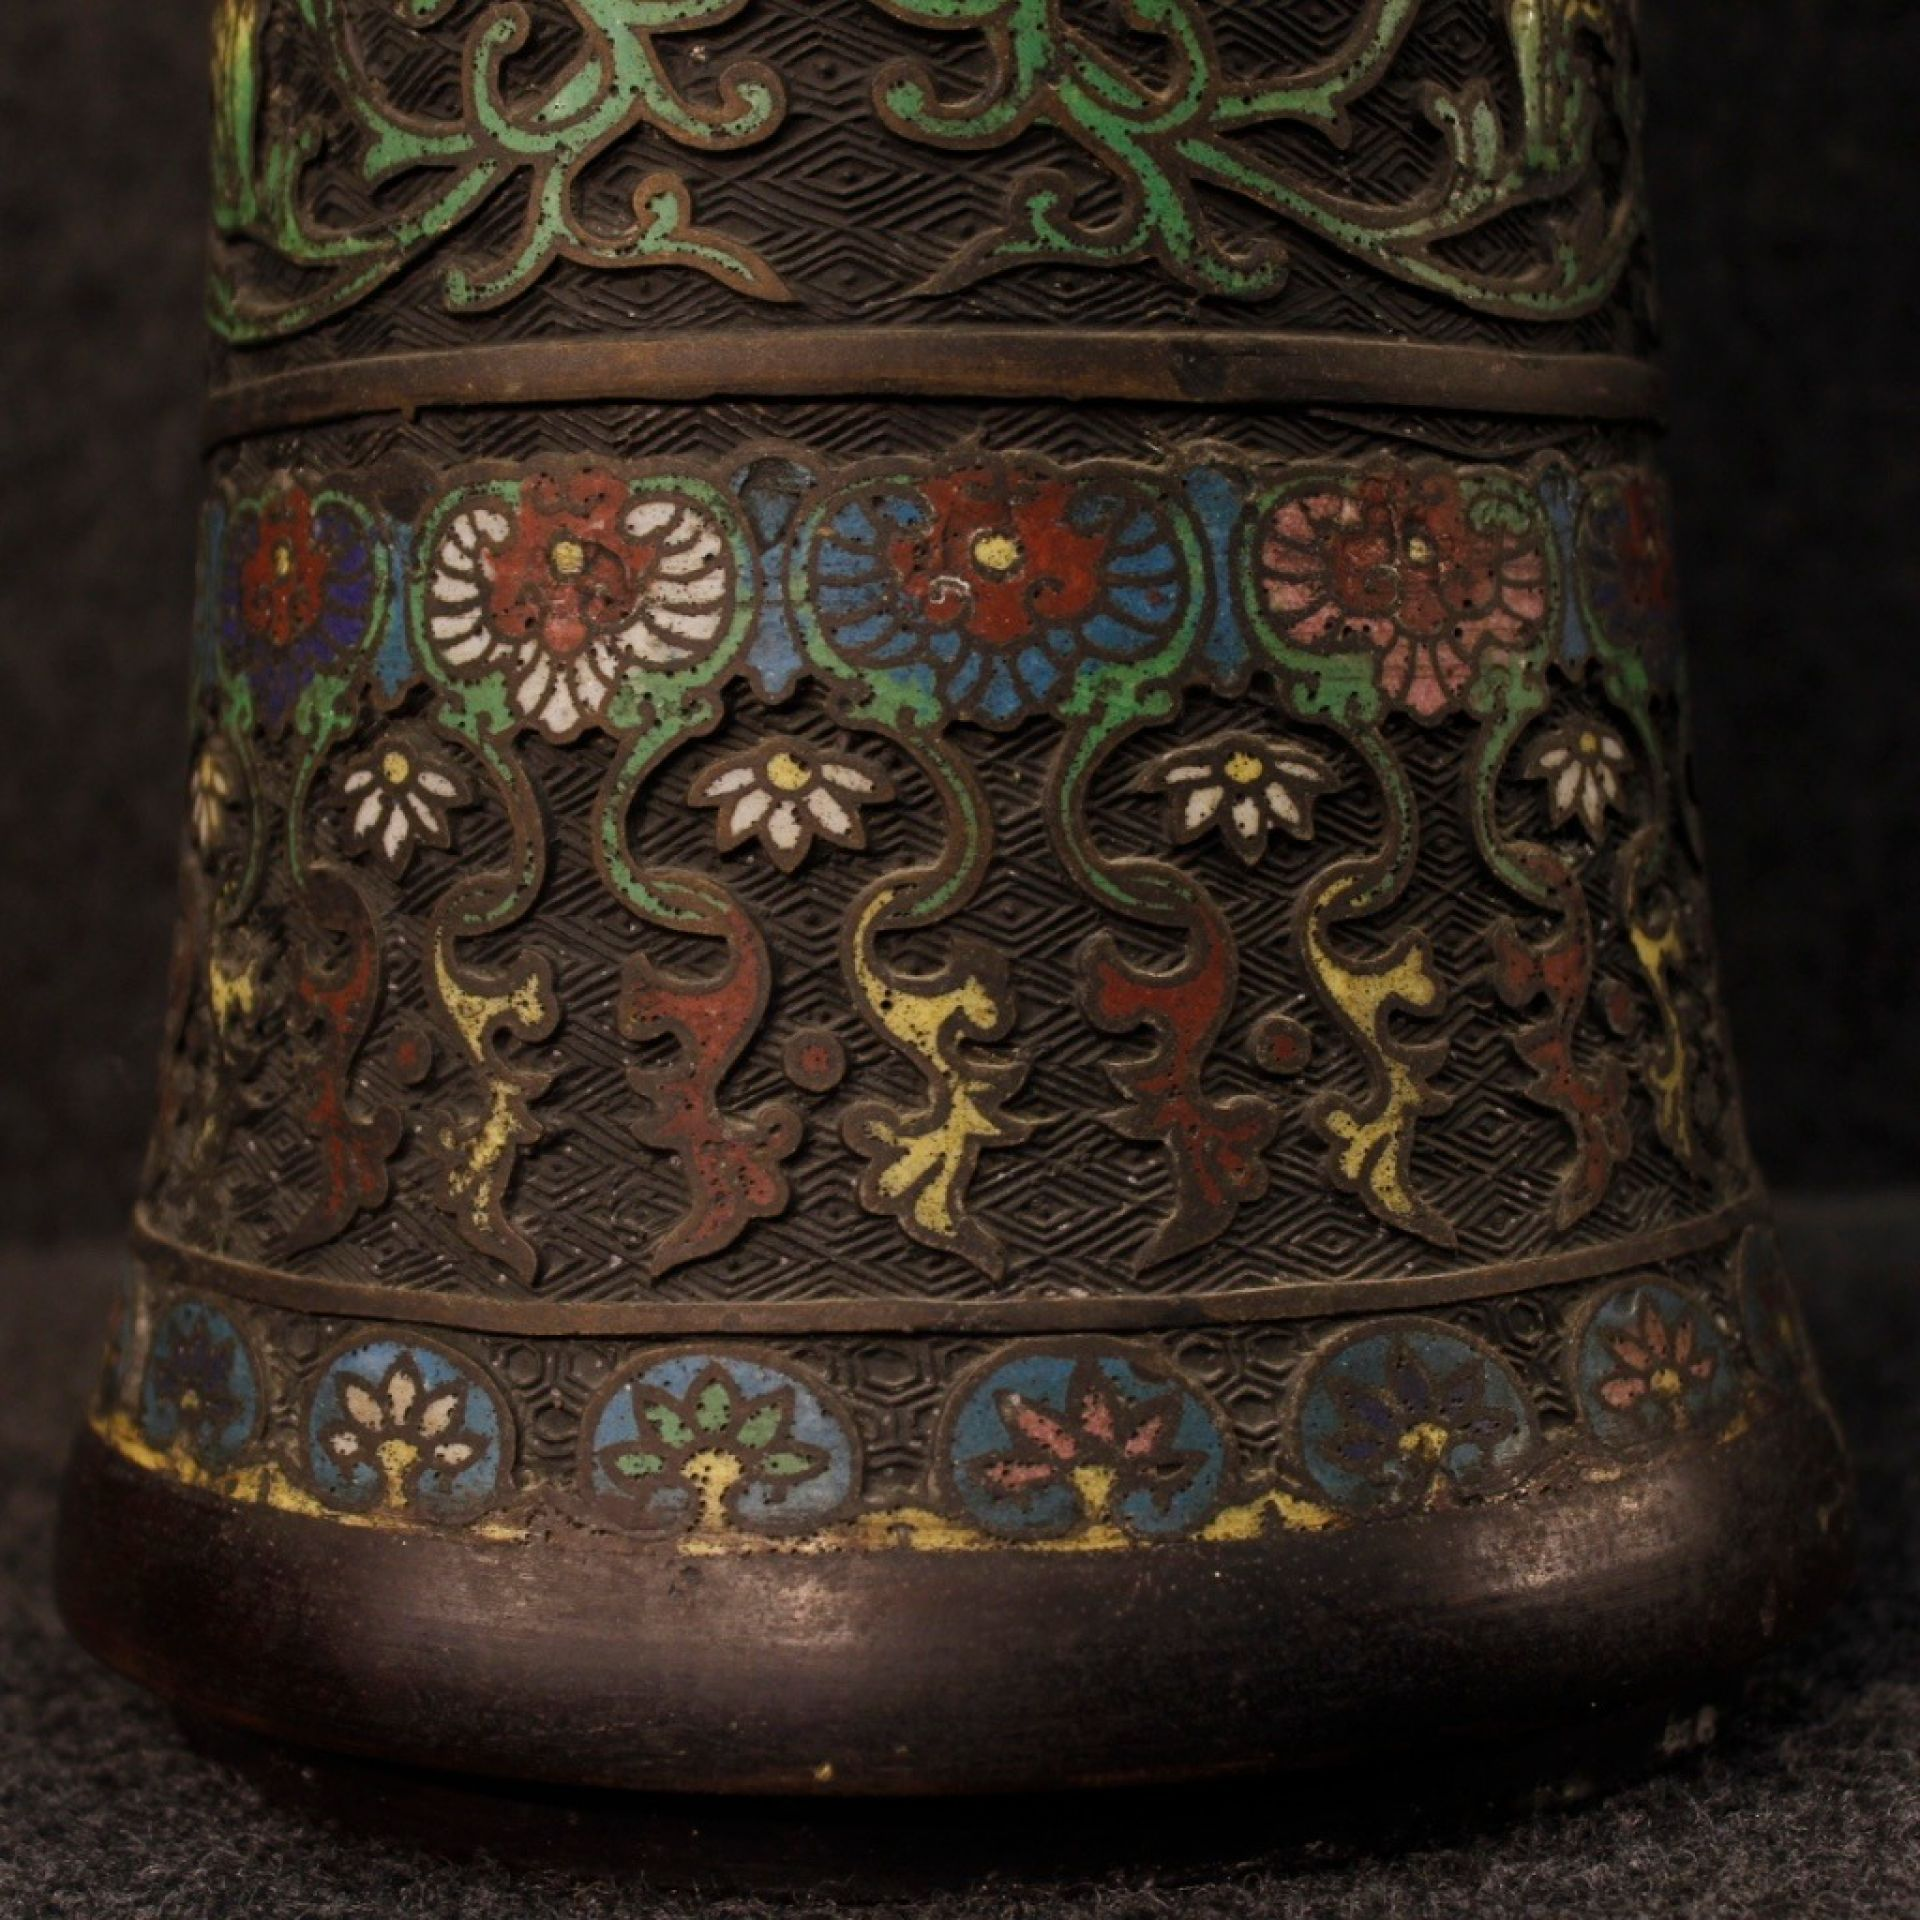 19th Century Painted Bronze Cloisonné Chinese Vases, 1880